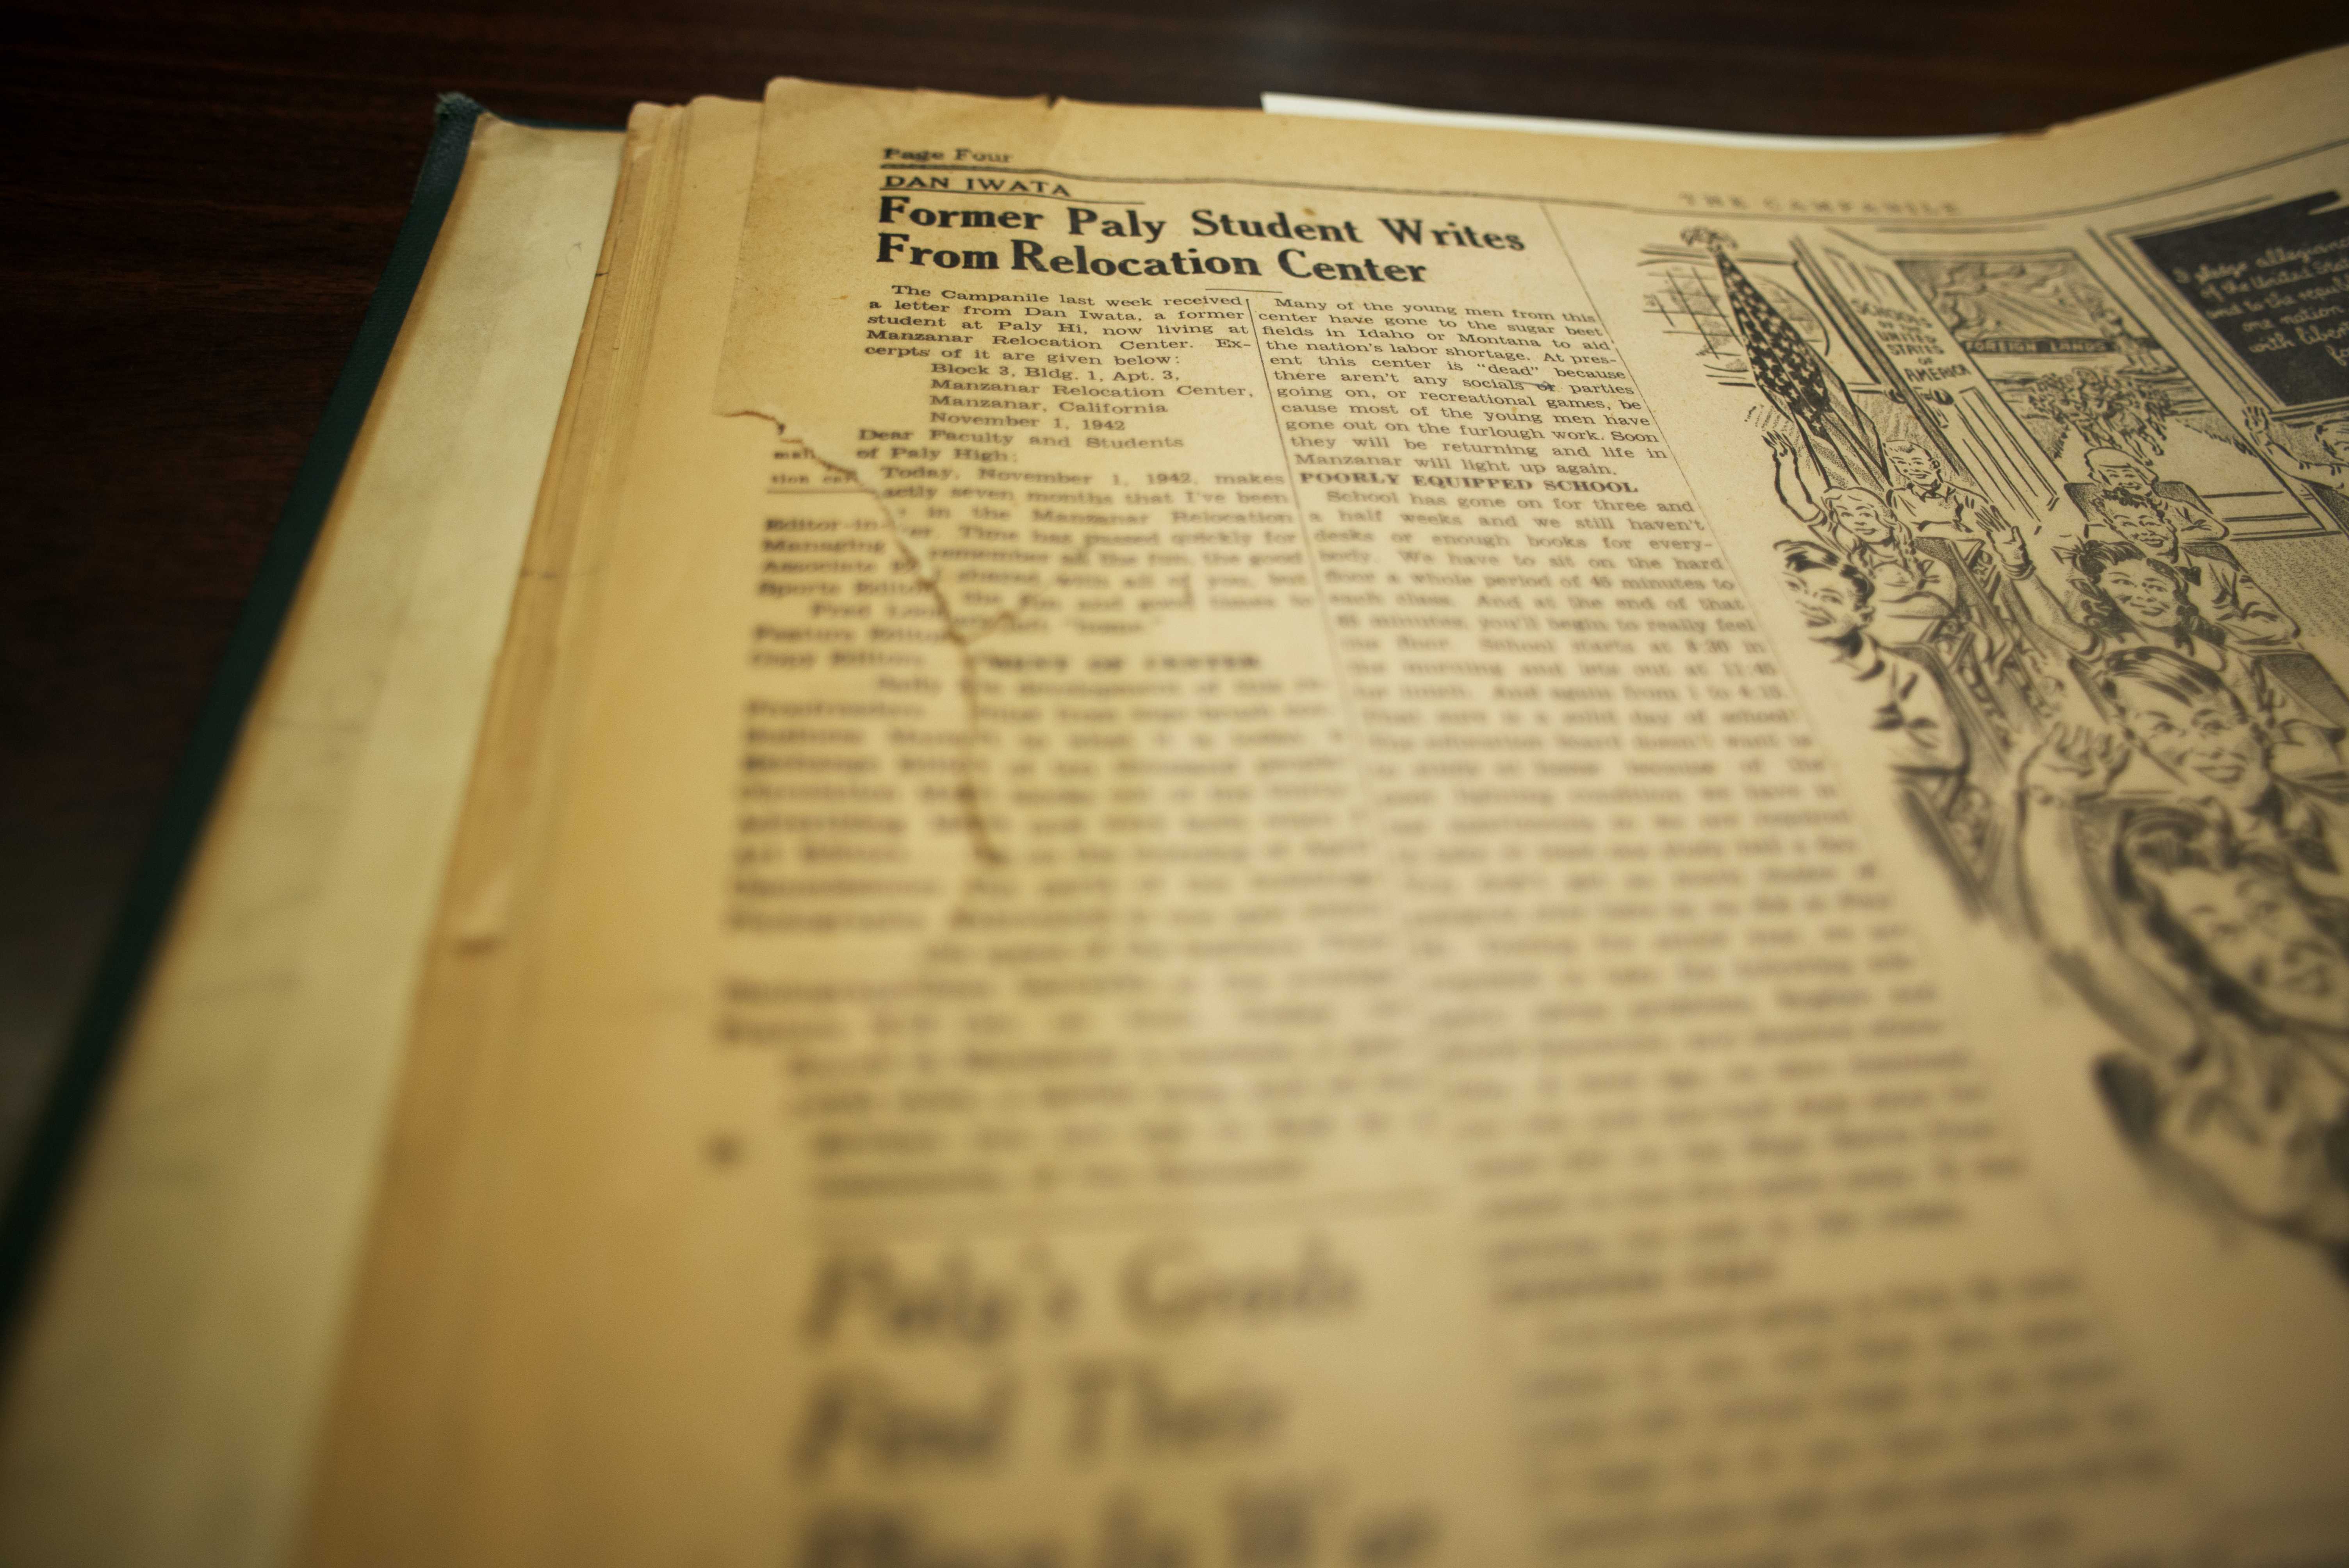 An article published in a 1942 edition of the Campanile, housed in the Paly archives. Photo by William Dougall.